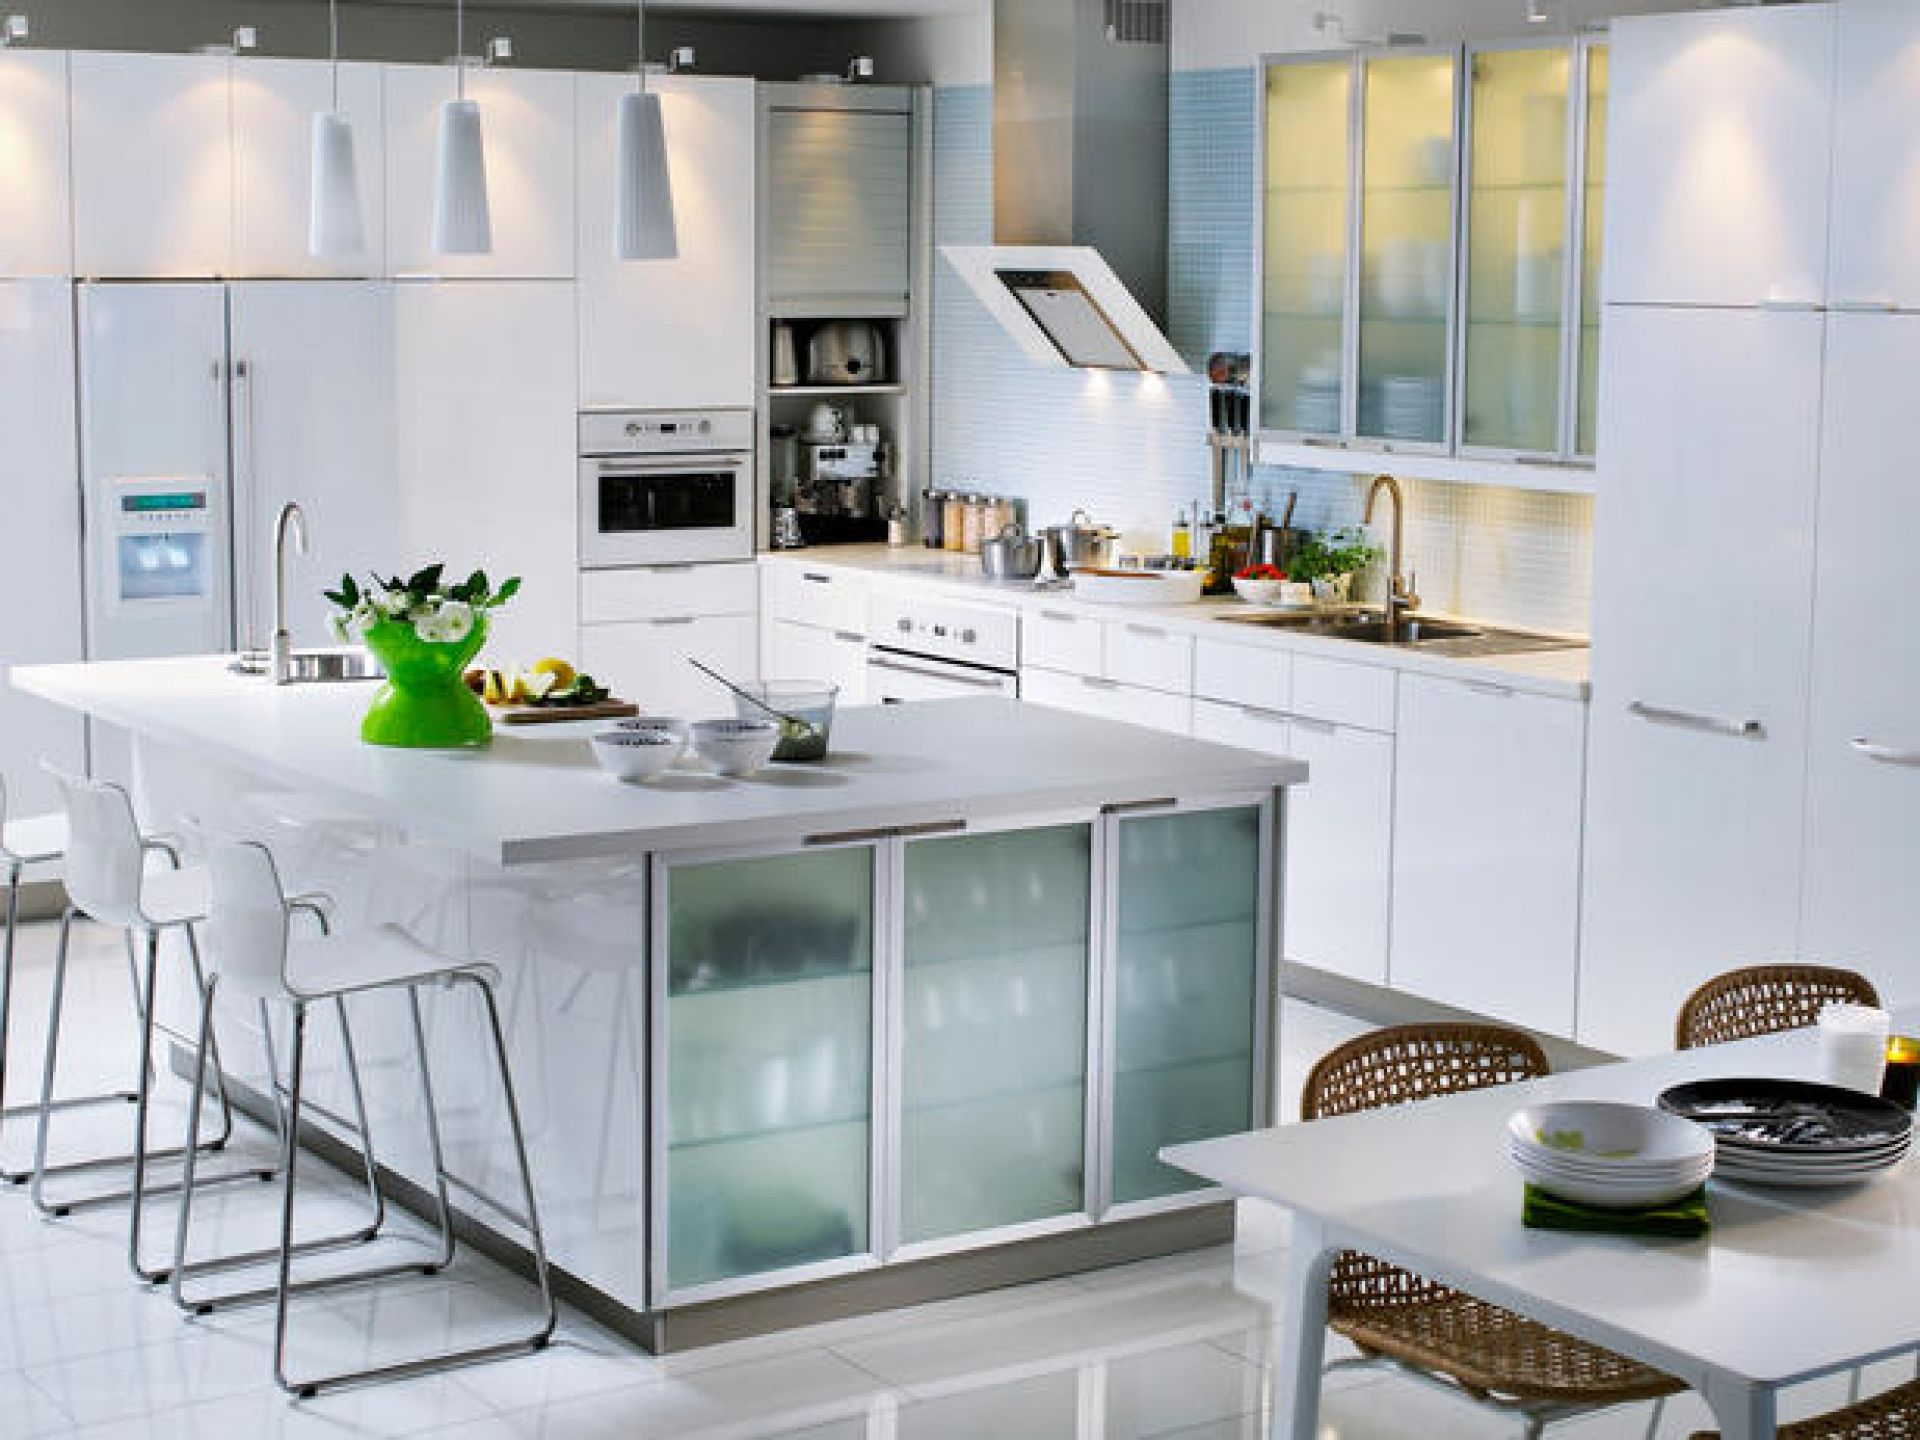 Classic Ikea Kitchens Online New On Interior Gallery | IKEA ...